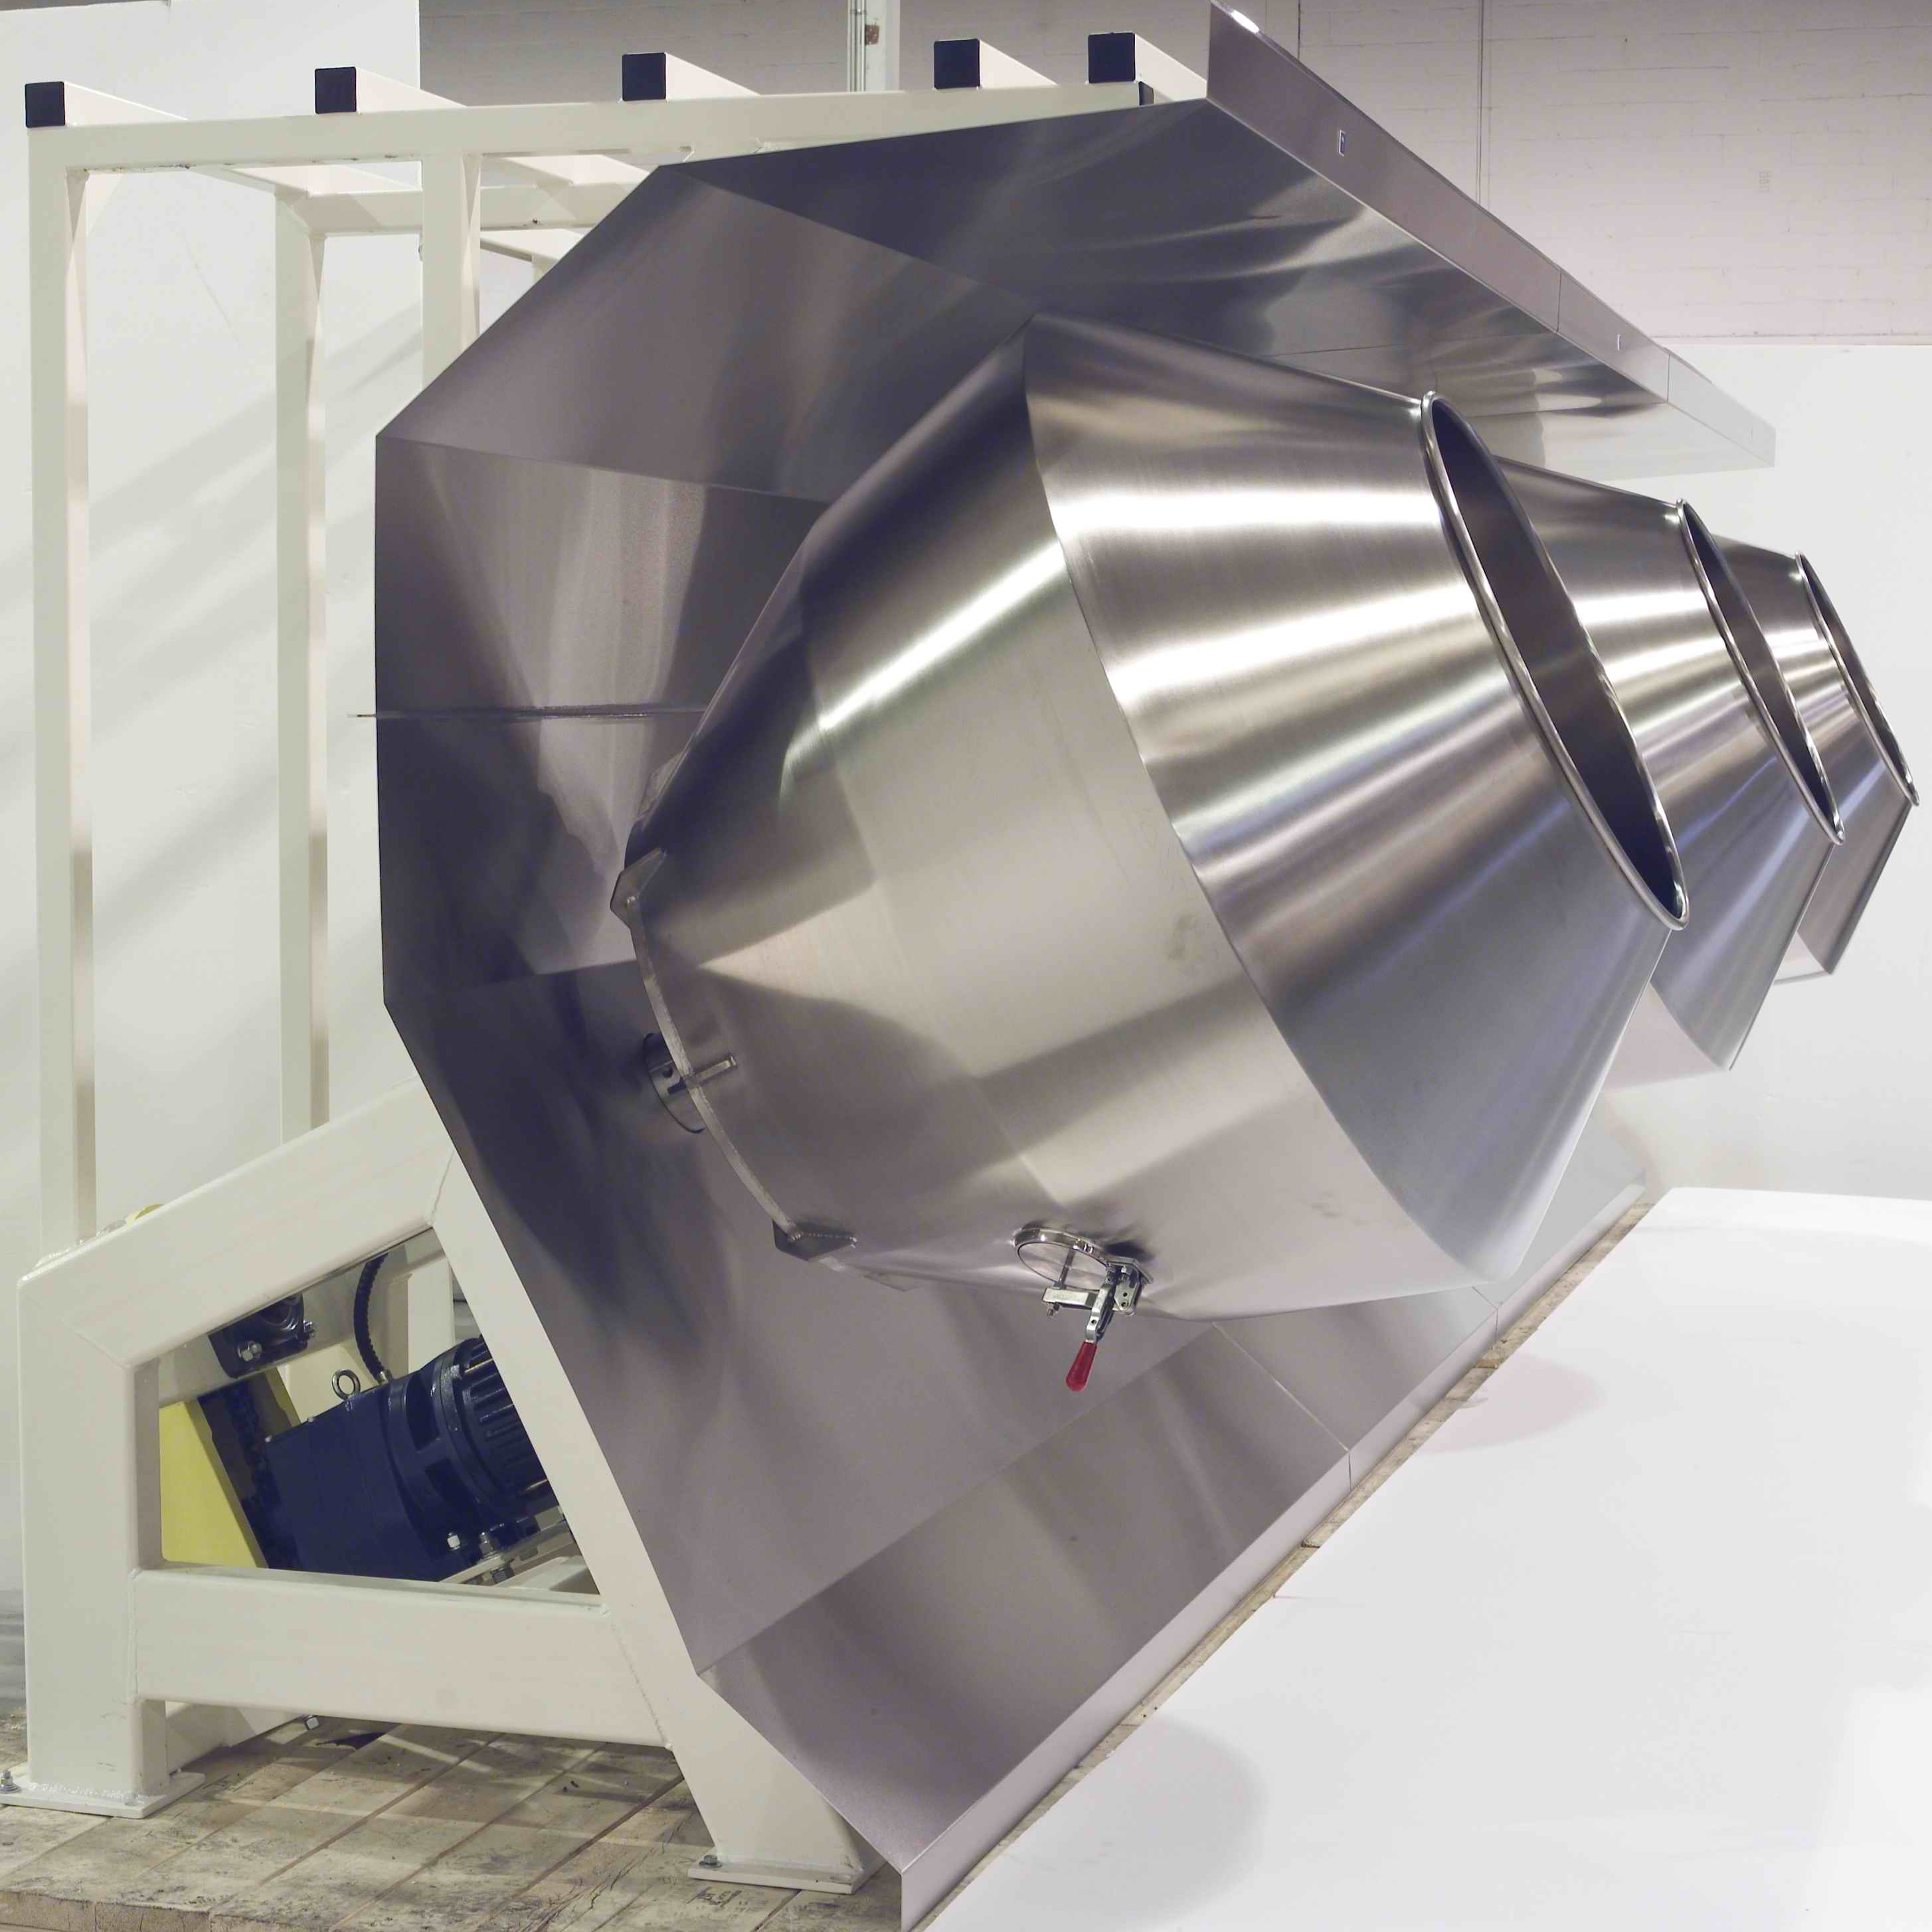 Conventional Coating Pans & Systems